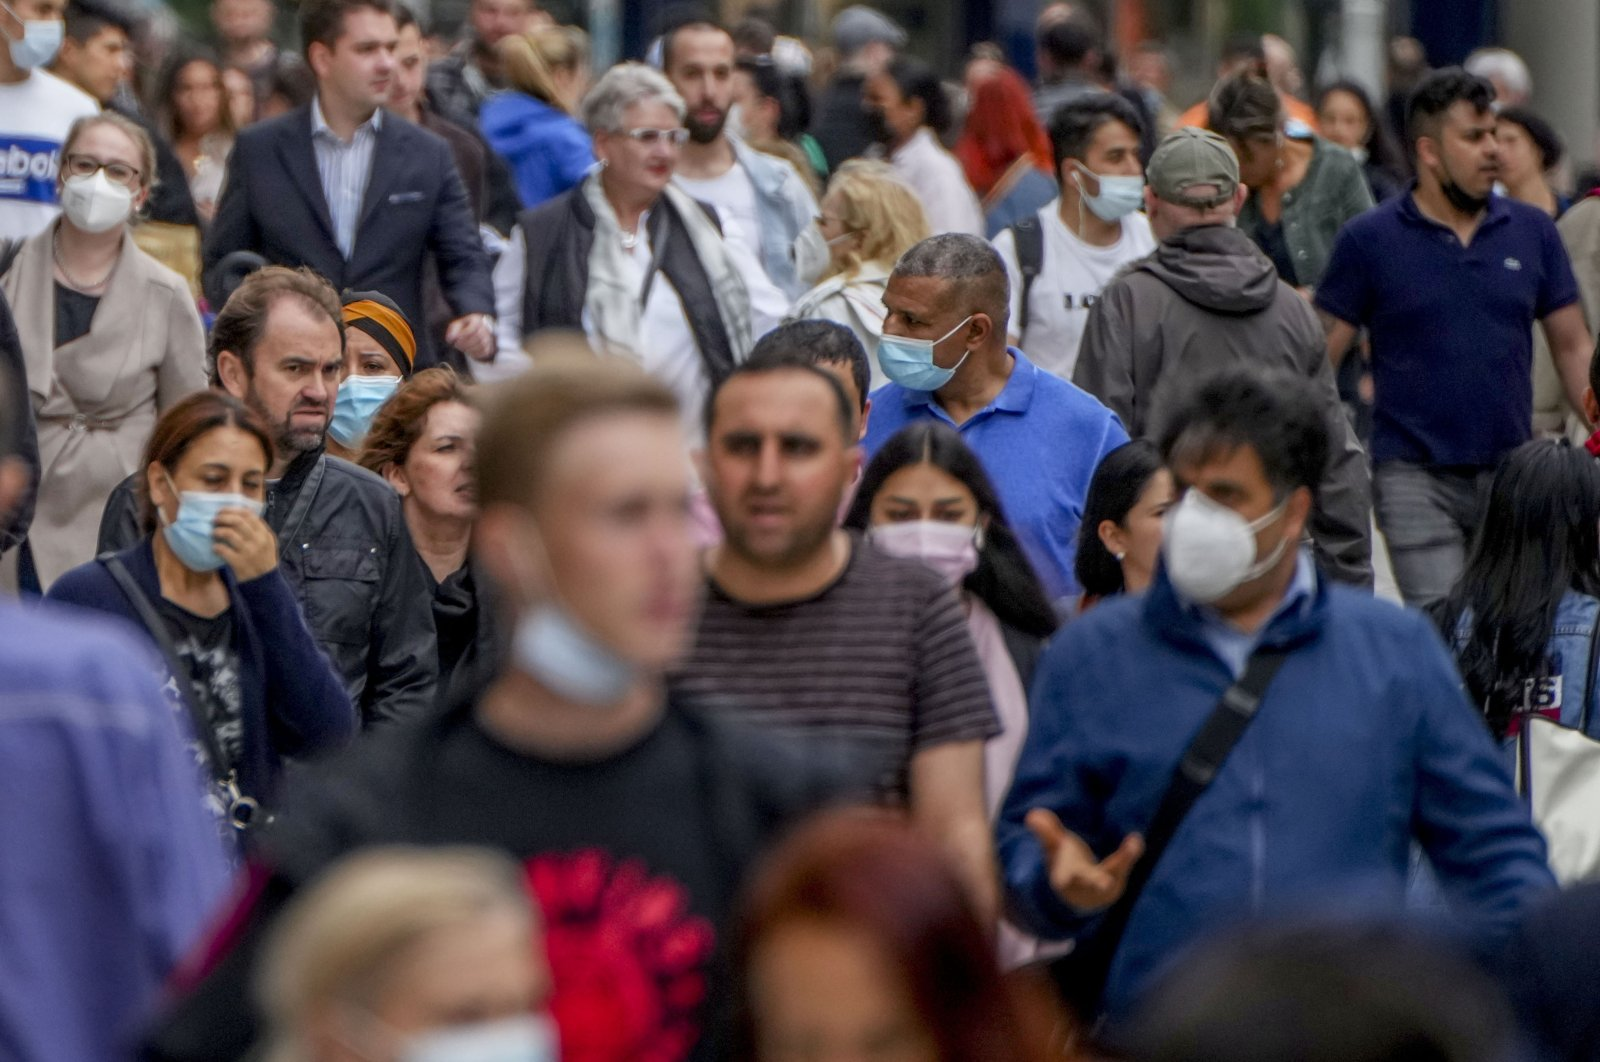 People, some with face masks and some without, walk on the main shopping street in Frankfurt, Germany, July 14, 2021. (AP Photo)